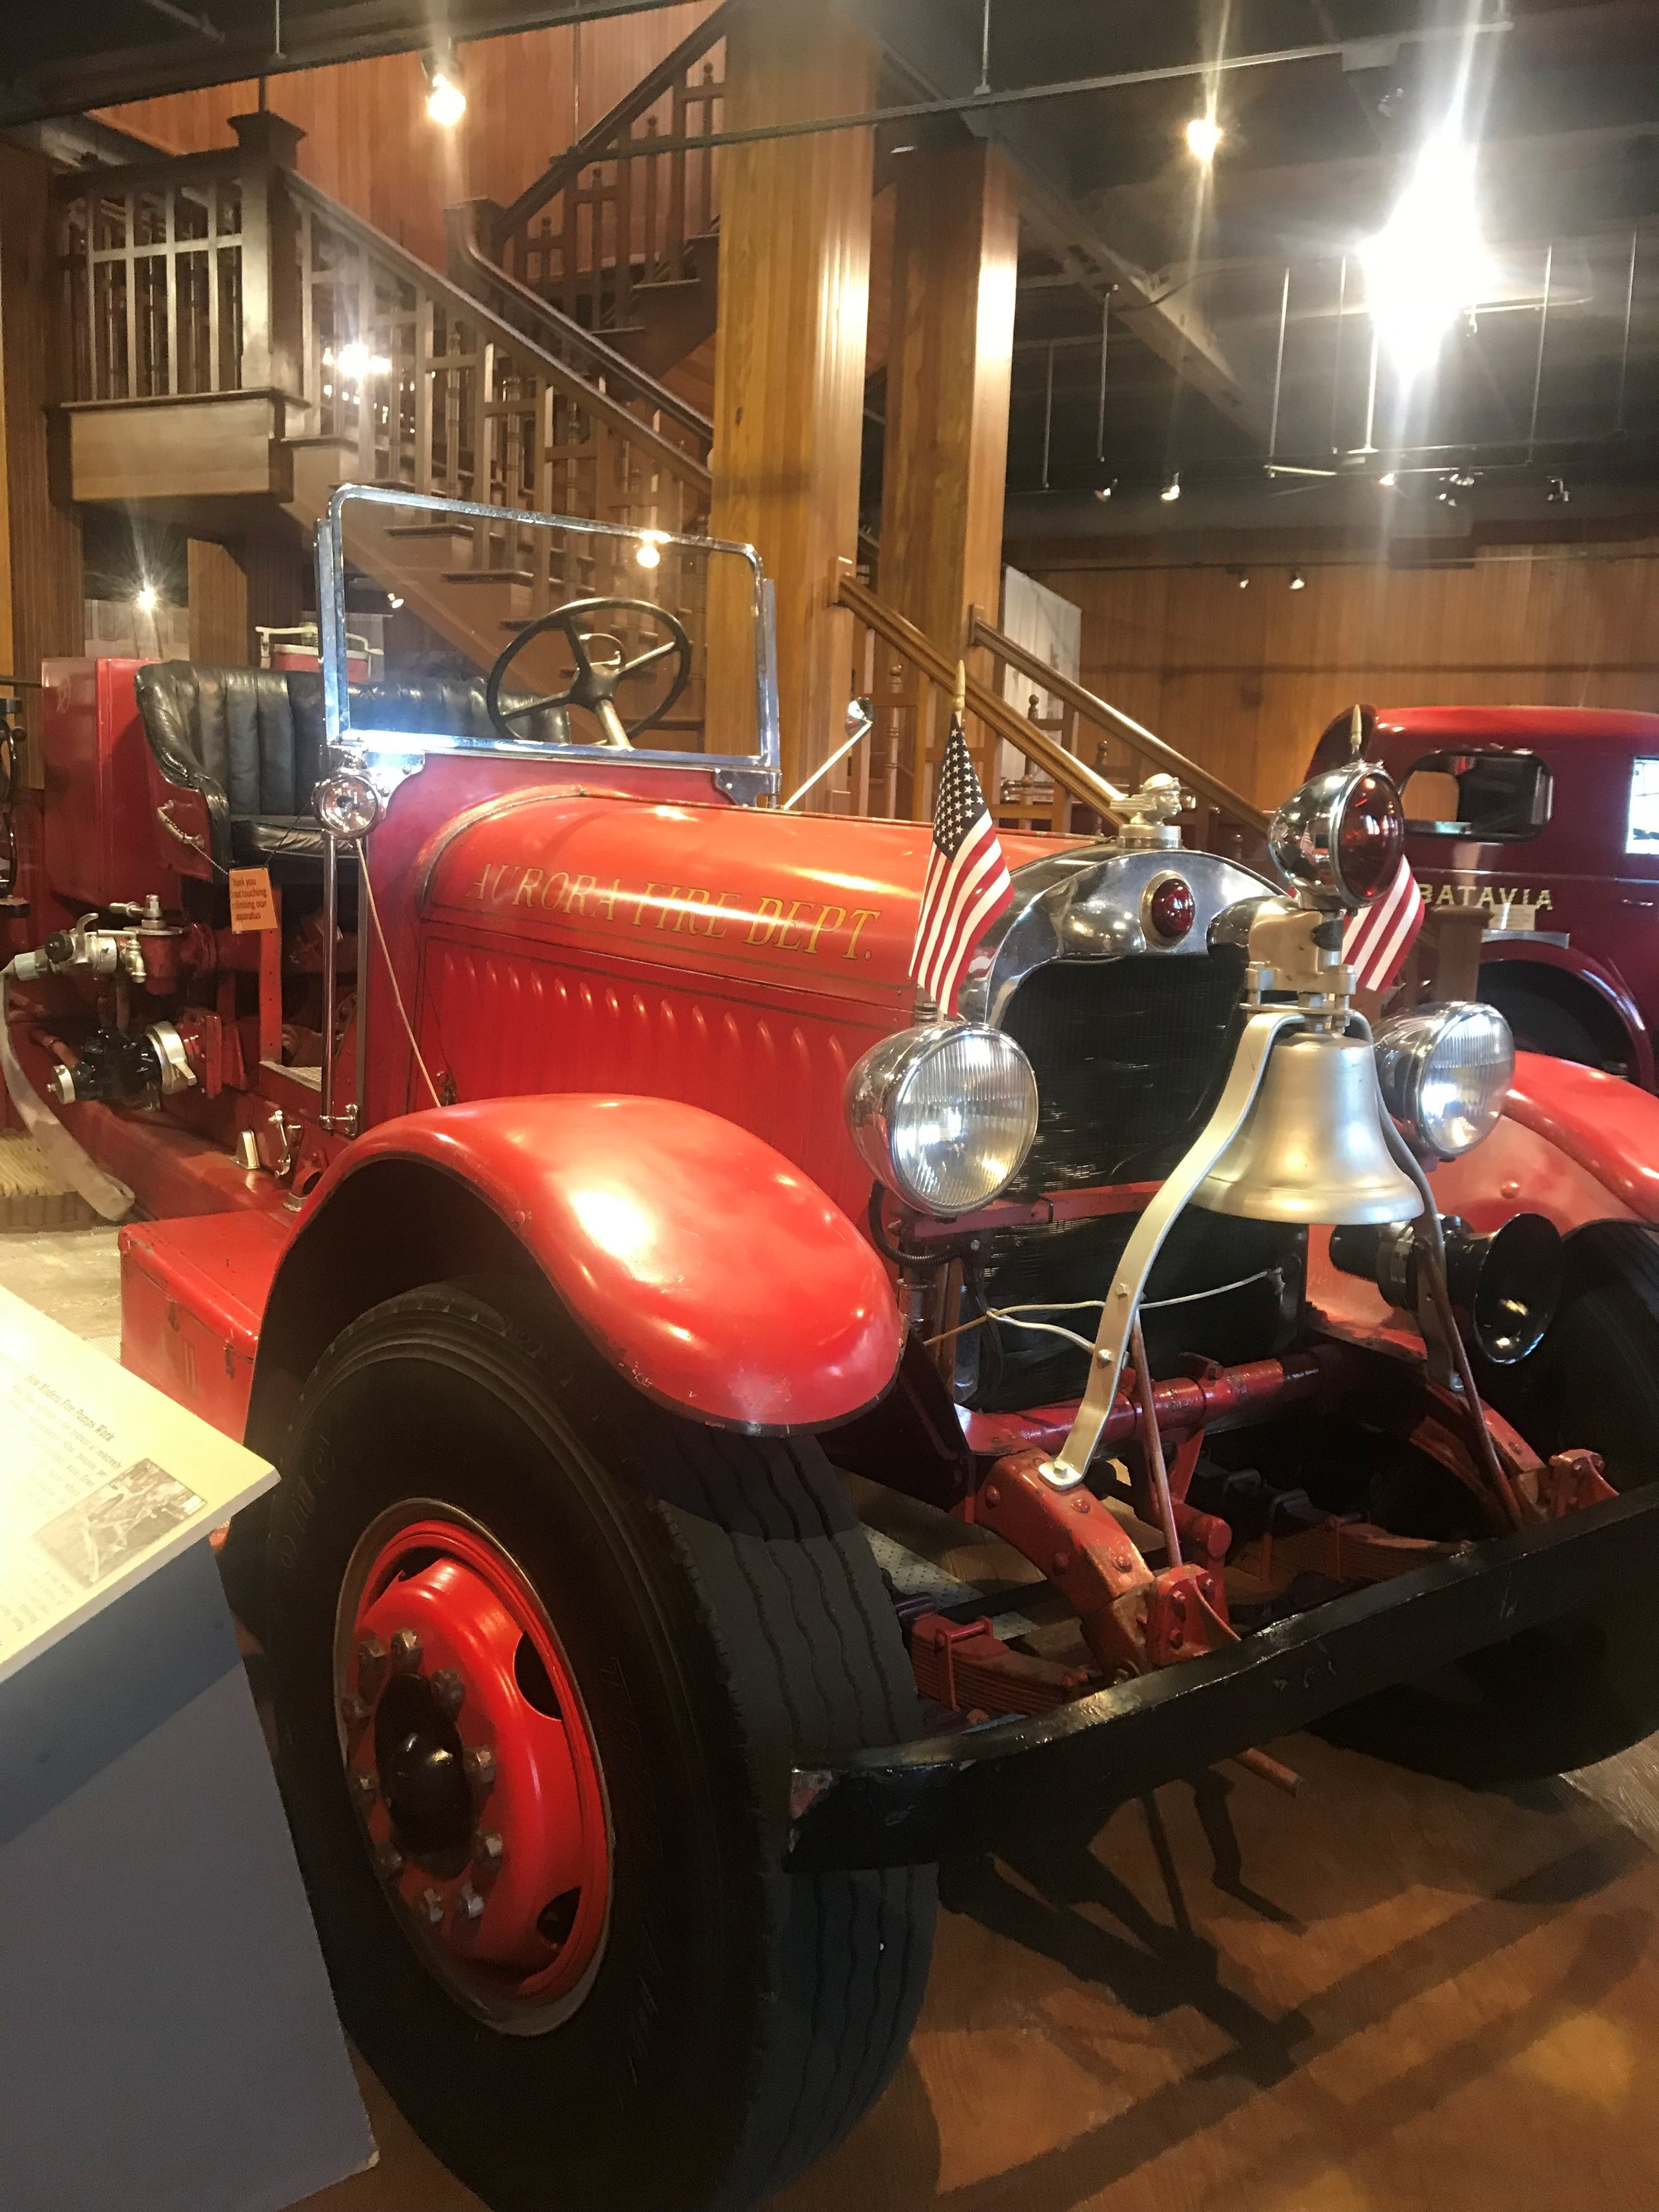 One of the early engines on display at the Aurora Regional Fire Museum